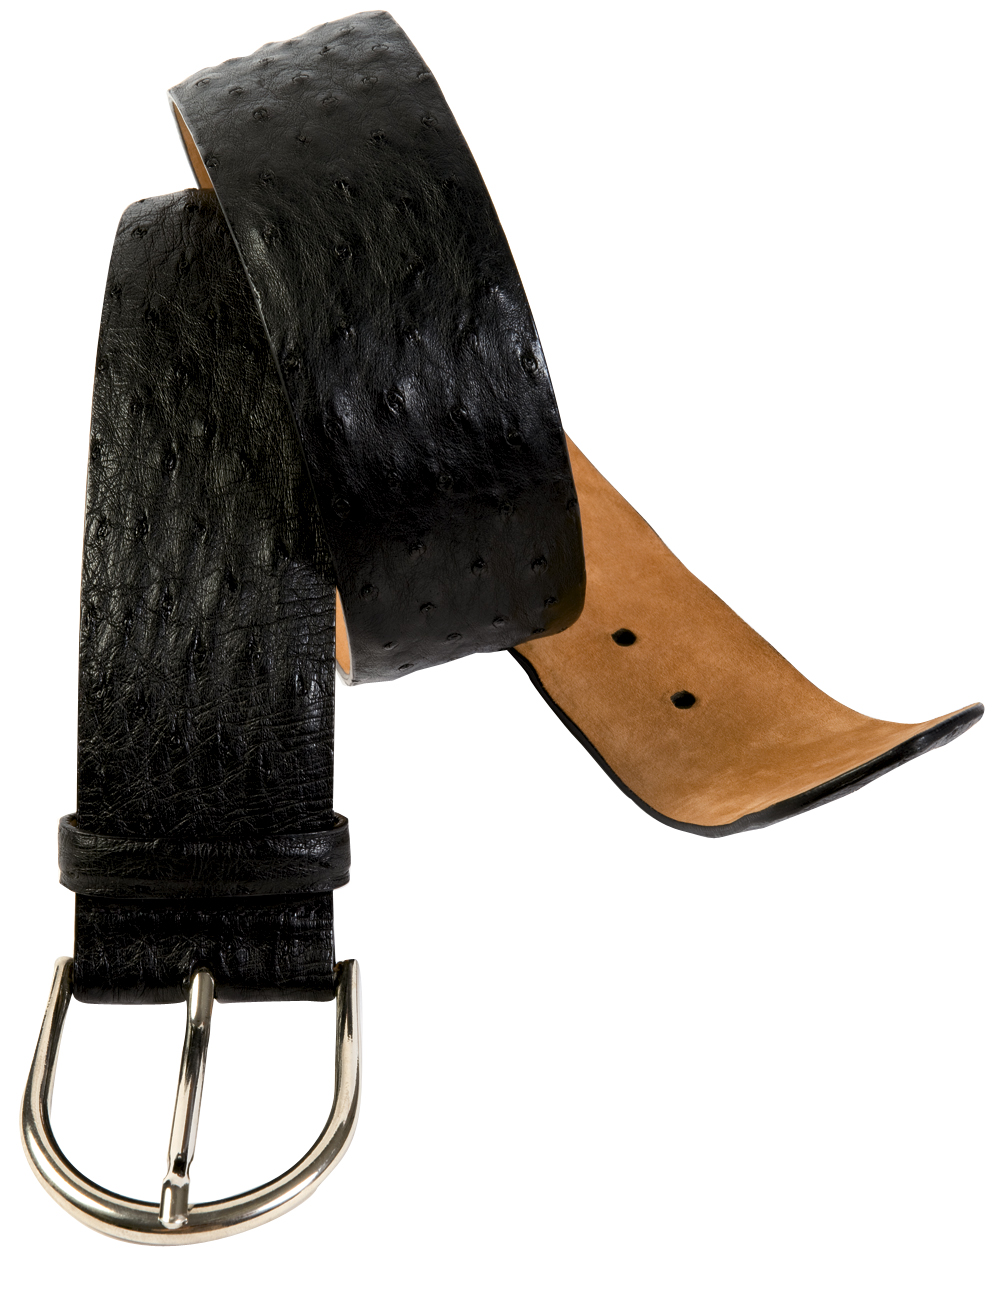 W. Kleinberg Ostrich belt with a nickel buckle, $365 at Rapport